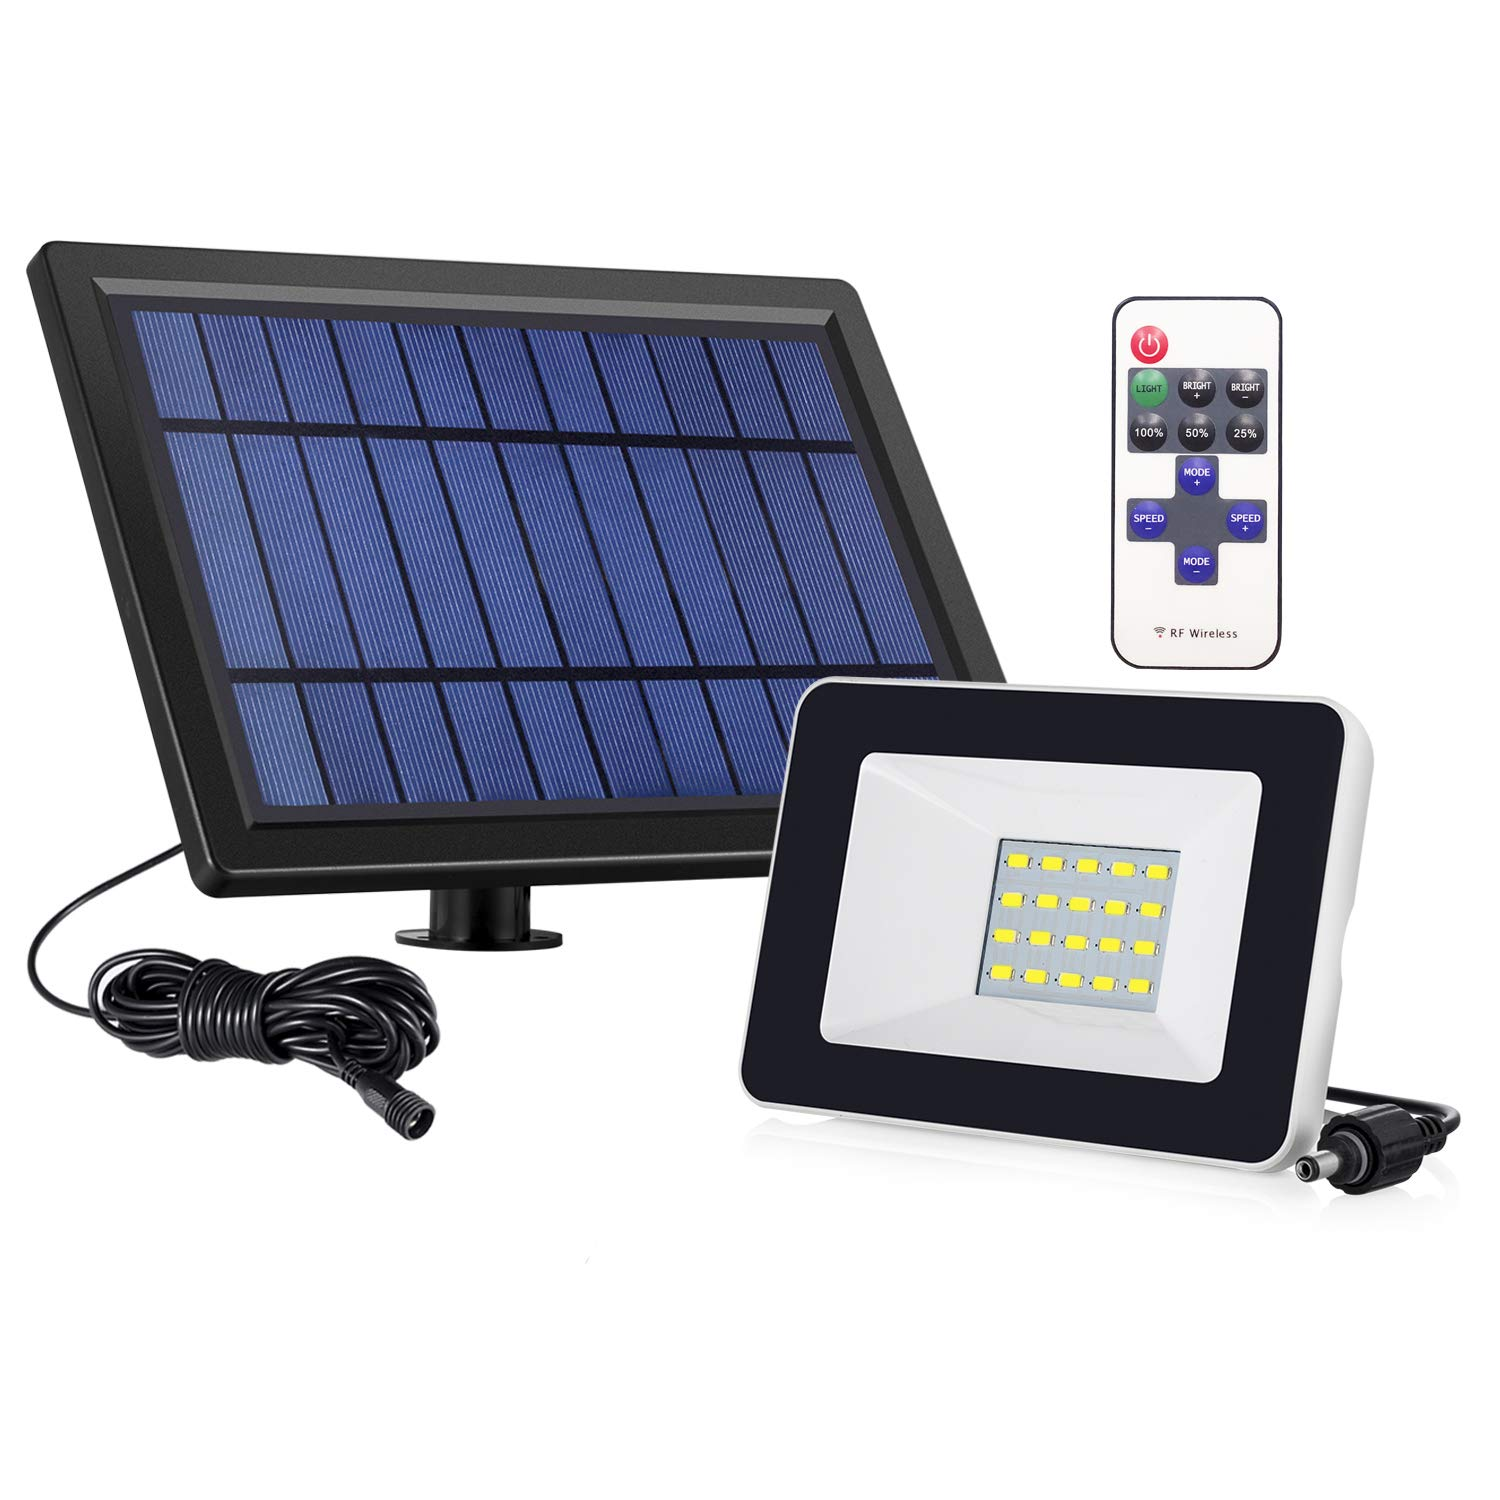 Solar Lights,Asucway Super Bright 20 LED Waterproof Solar Flood light,with IR Remote Controls Security Lights Outdoor Lighting for Patio Deck Yard Garden Driveway Pool Area Driveway Pool Area